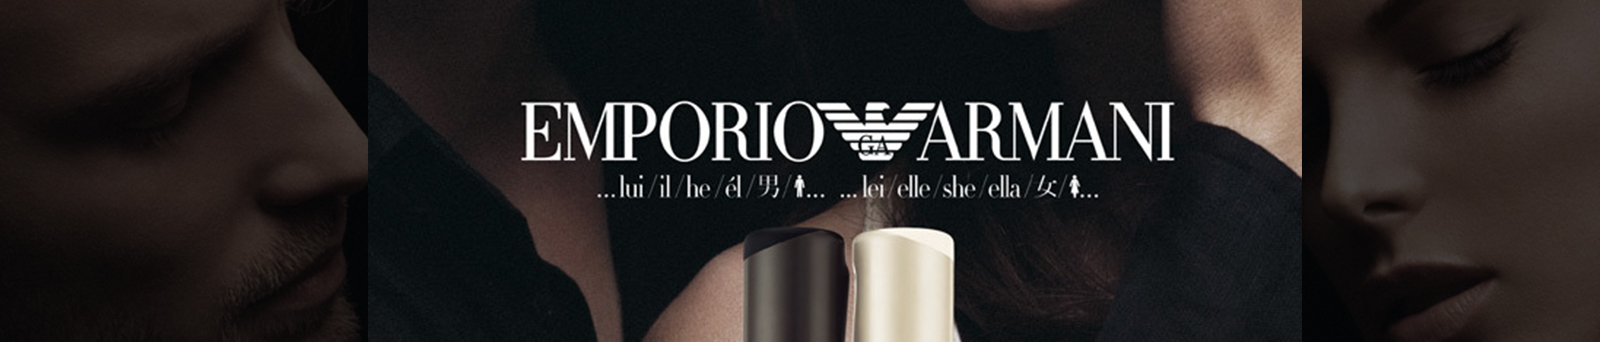 Buy Emporio Armani Products Online Ghana | Beauty Express GH